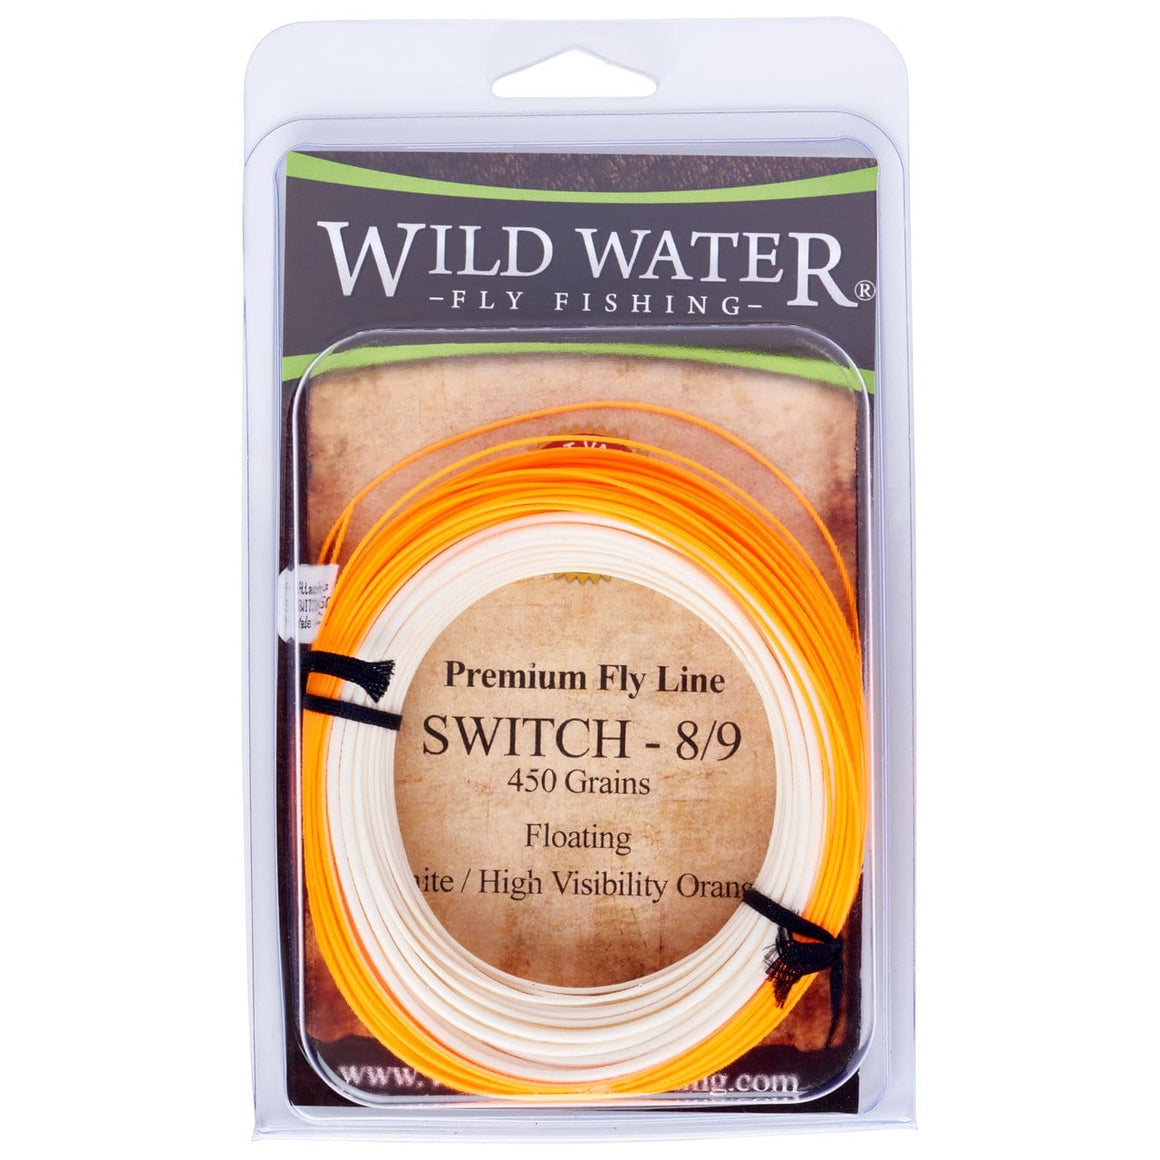 Two Color Floating 450 Grain Switch Fly Line | Wild Water Fly Fishing